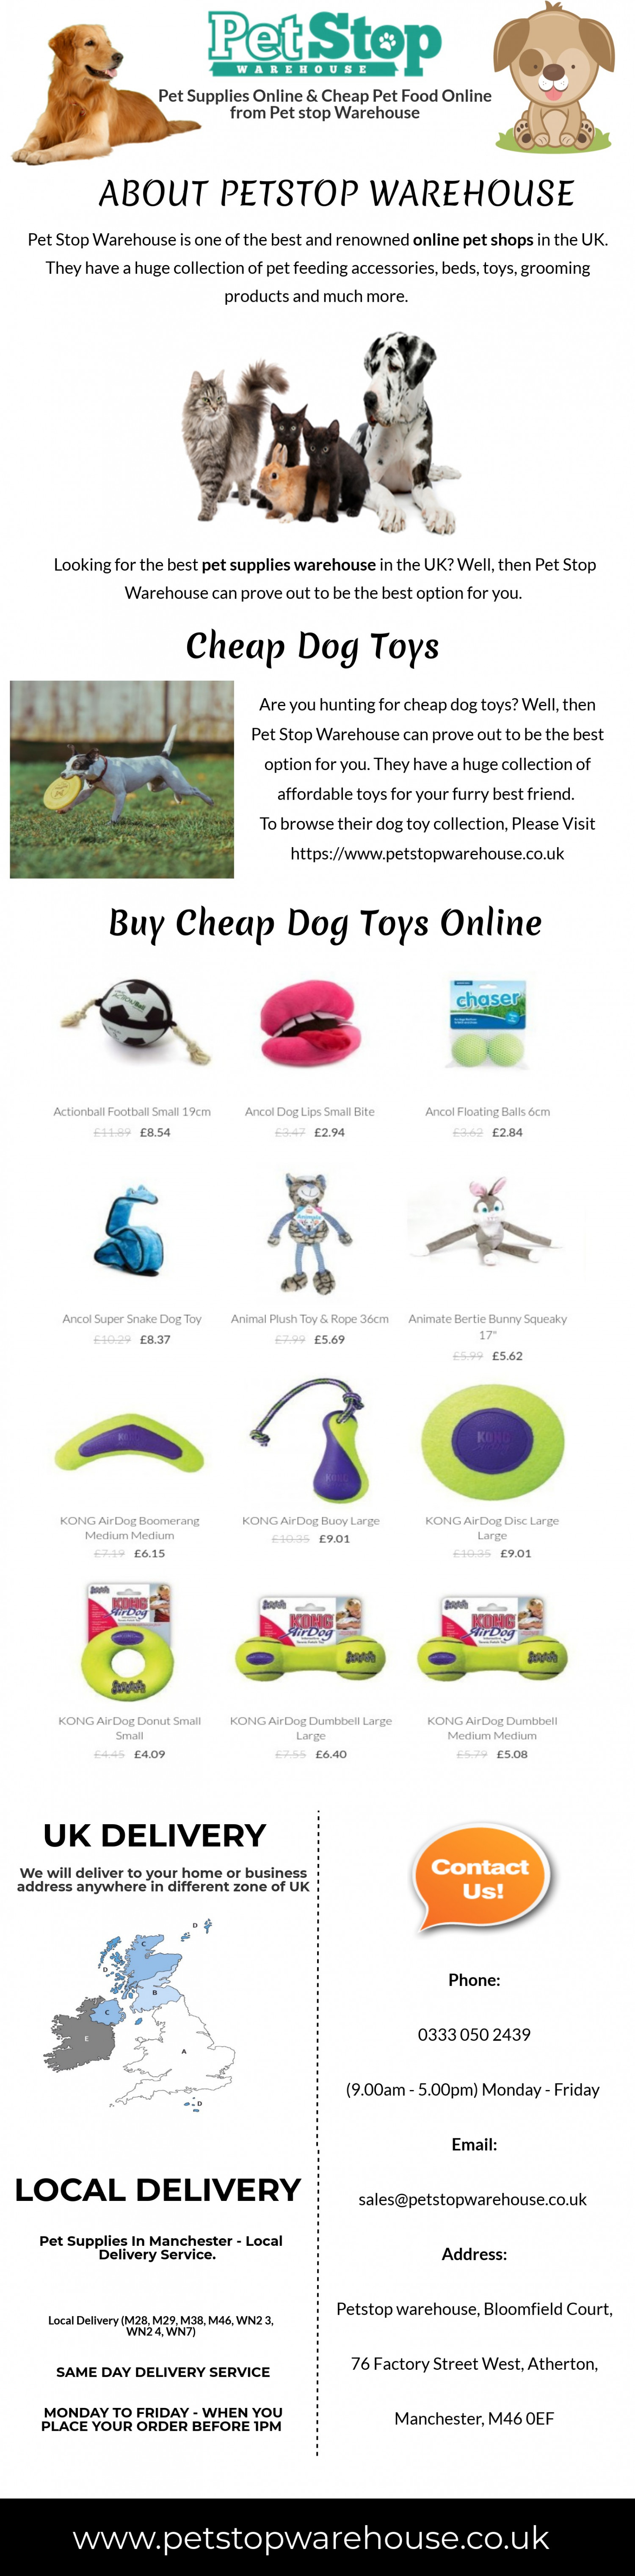 Cheap Dog Toys | Petstop Warehouses Infographic